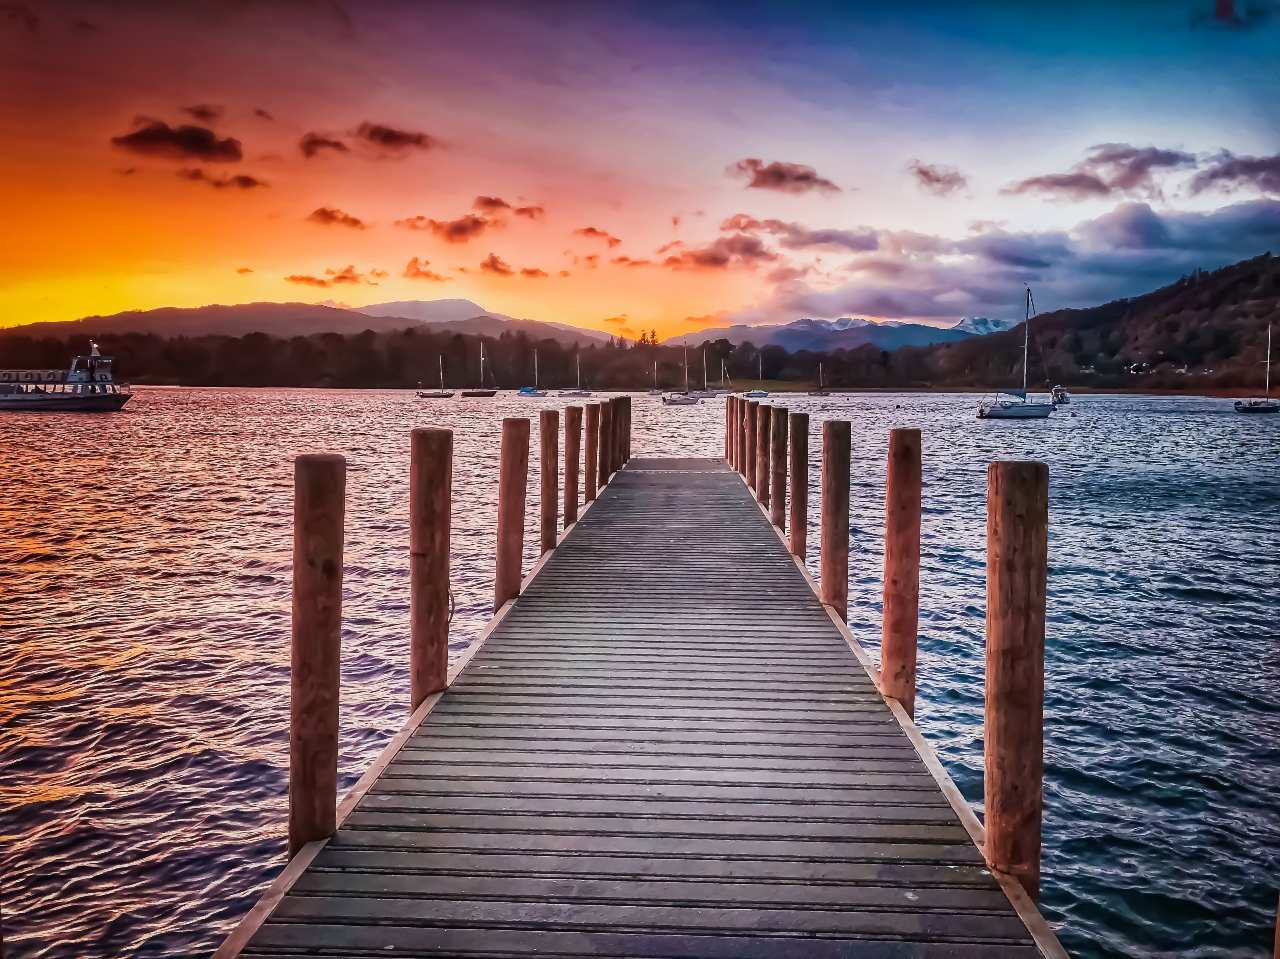 sunset at Lake Windermere